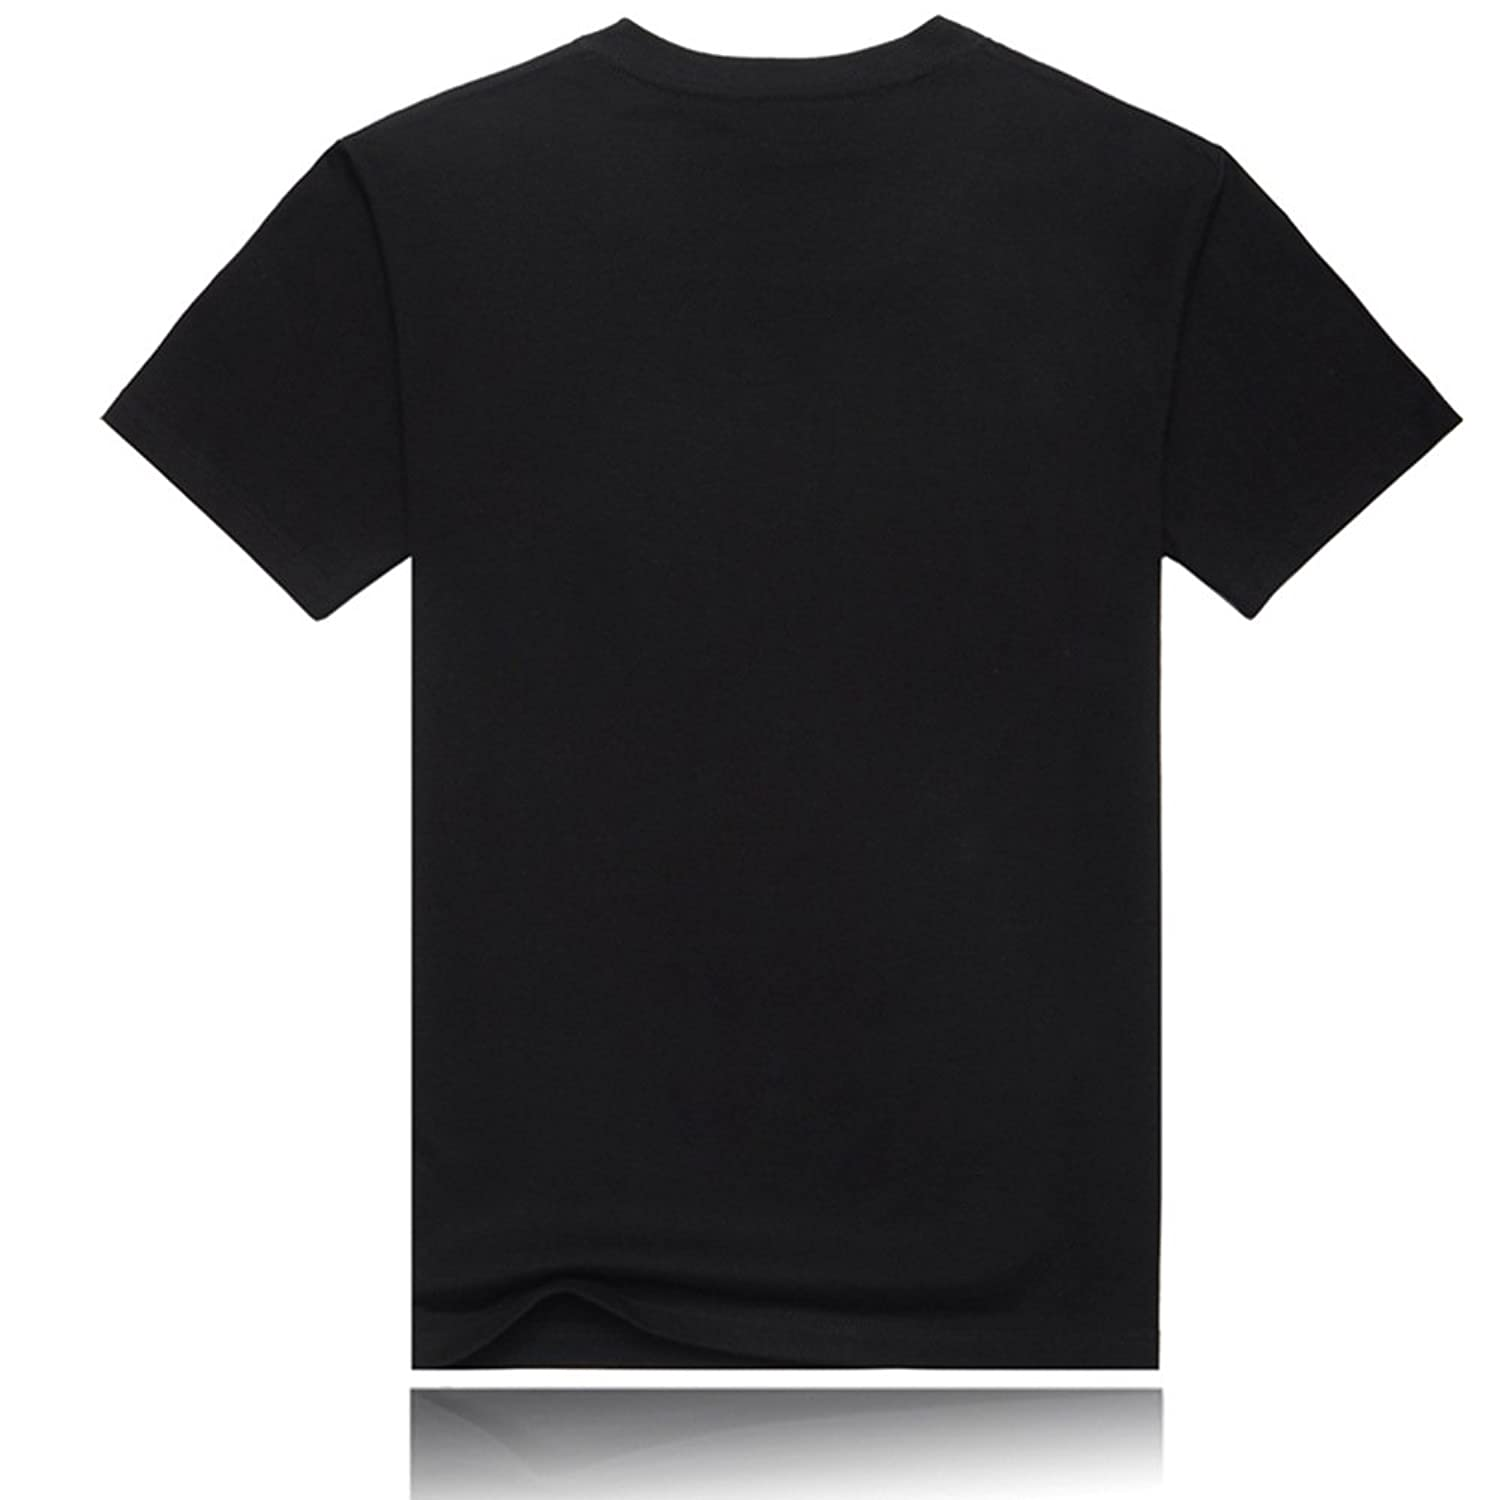 Teespring Unisex LIMITED TIME OFFER Hanes Tagless T-Shirt